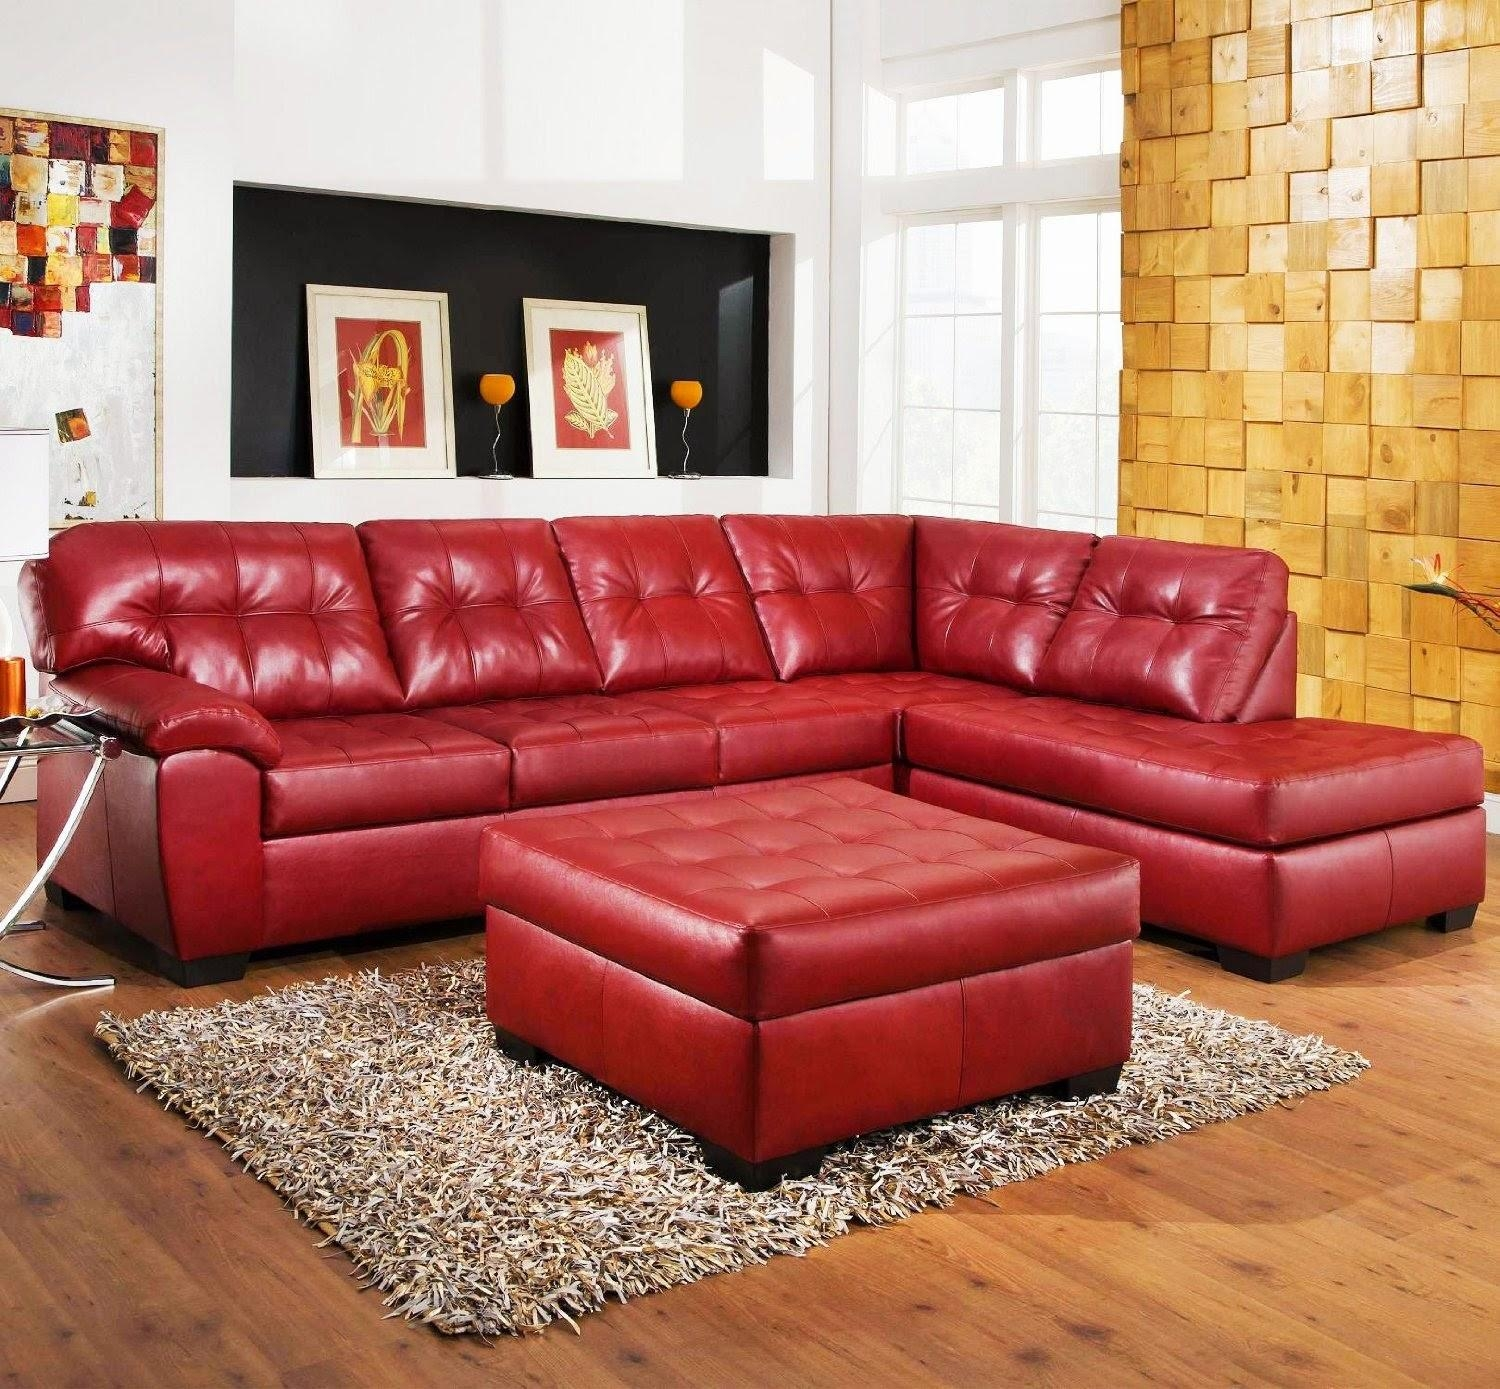 Red Sectional Sleeper Sofa – Tourdecarroll Regarding Red Sleeper Sofa (View 15 of 20)